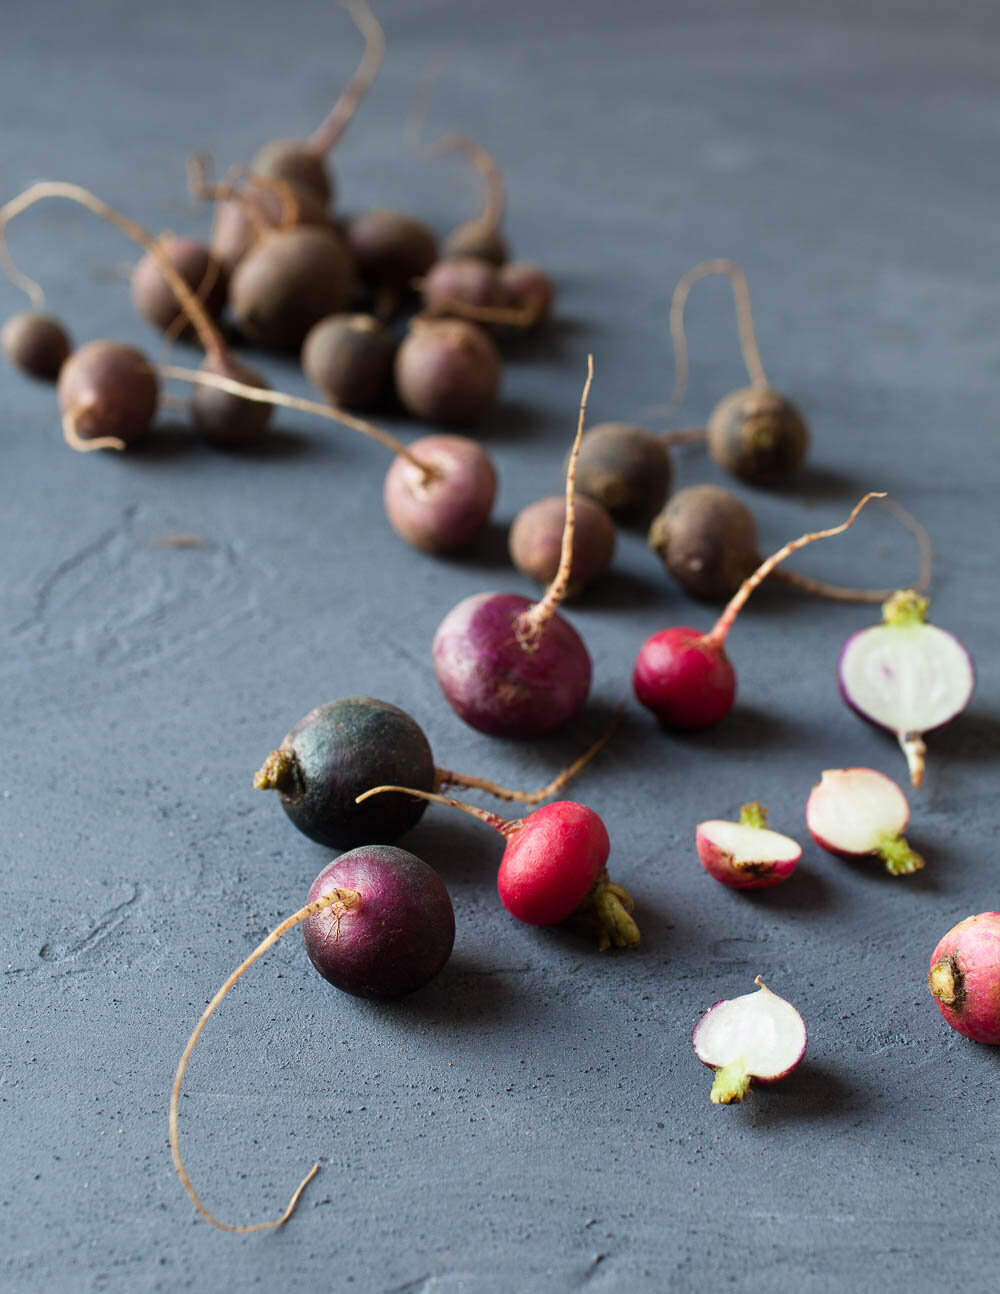 photograph of purple and red radishes from muddy to clean on textured background